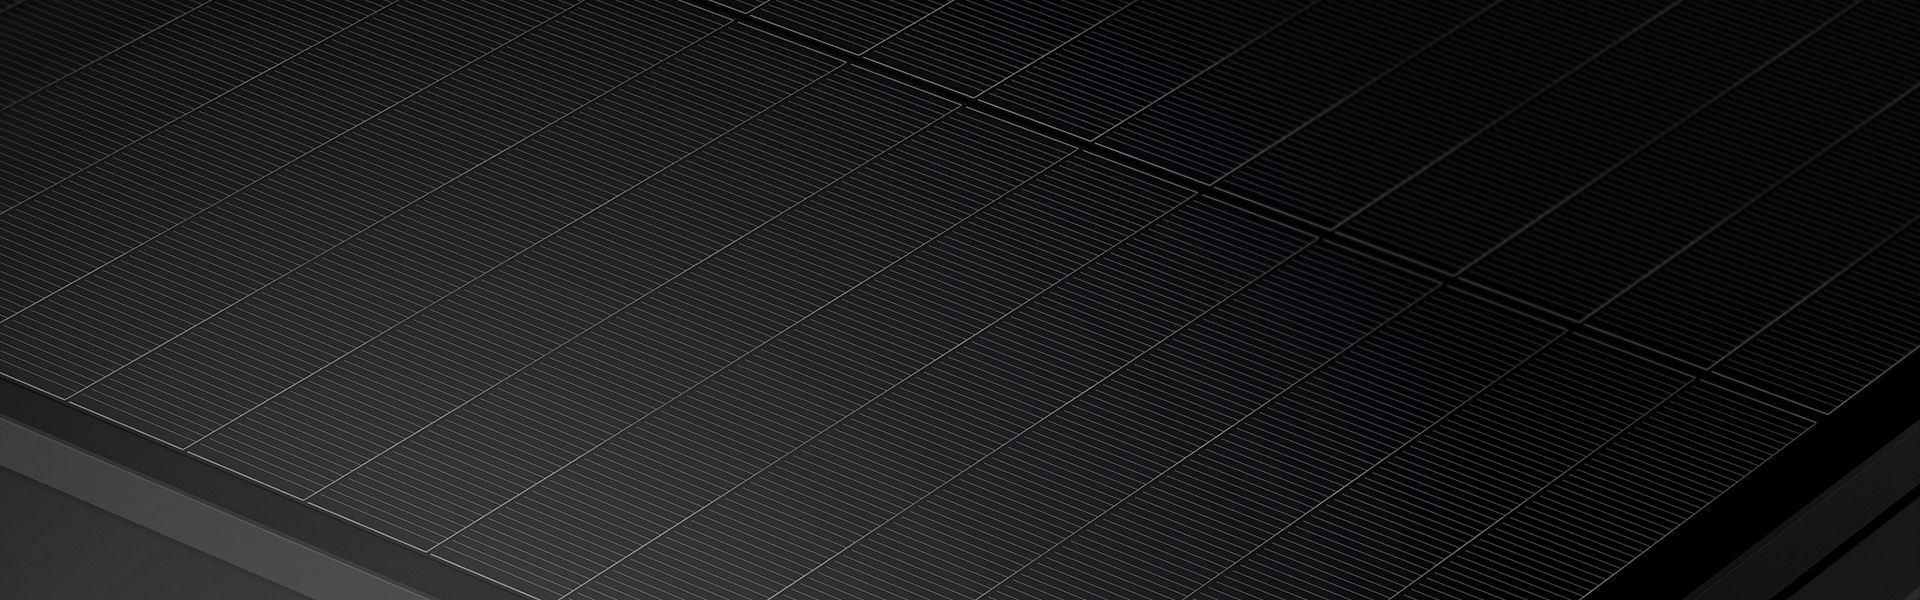 Performance solar panel close up